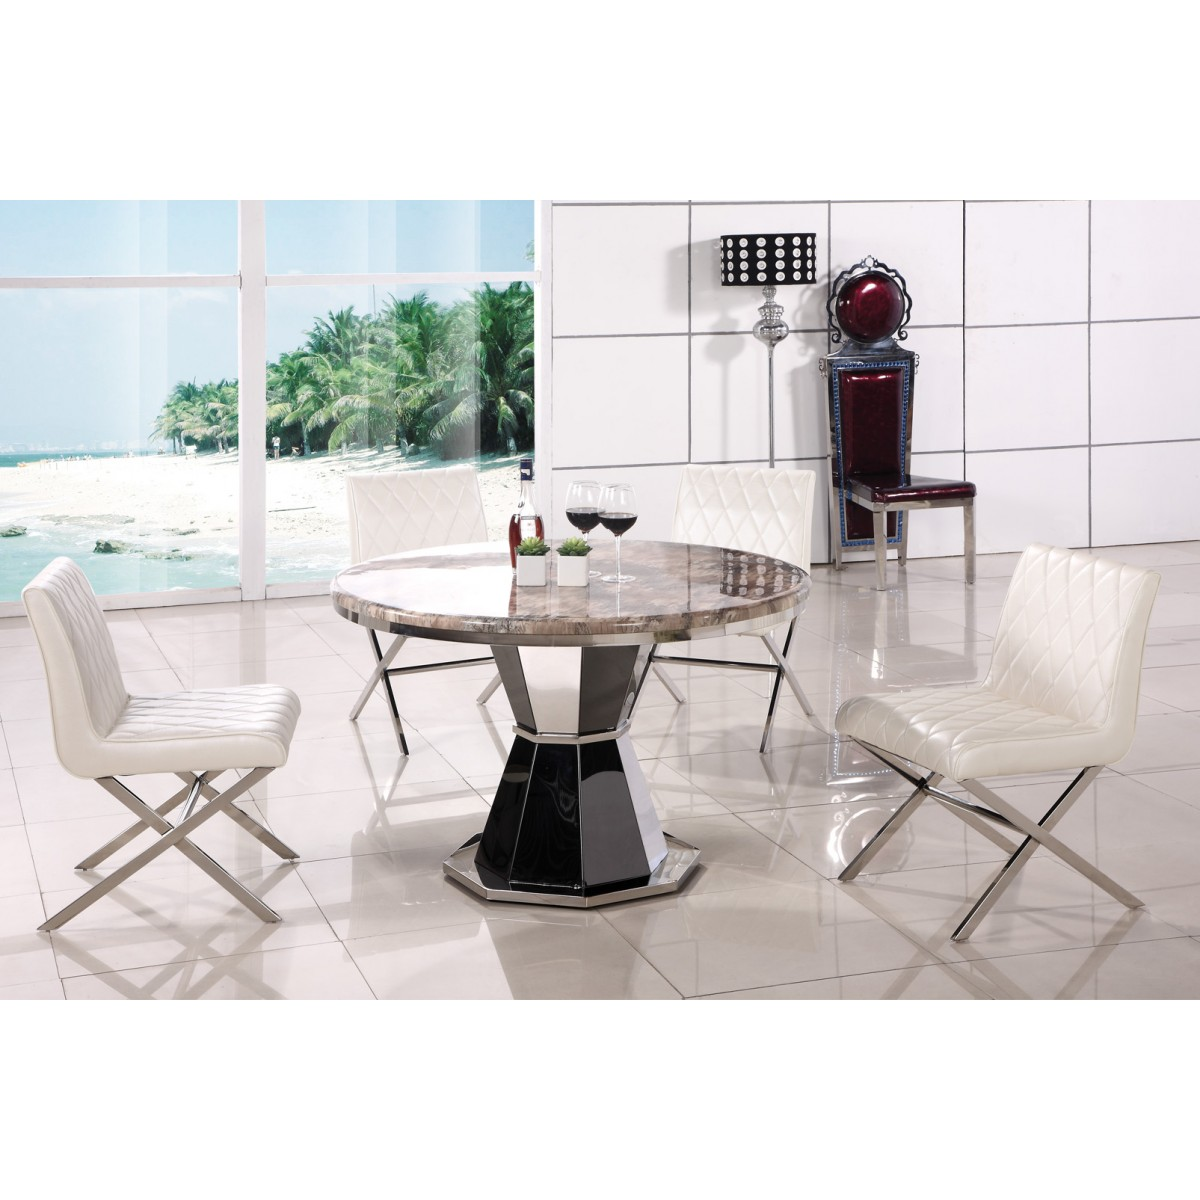 Table ronde en inox et marbre aurele - Table ronde en marbre ...